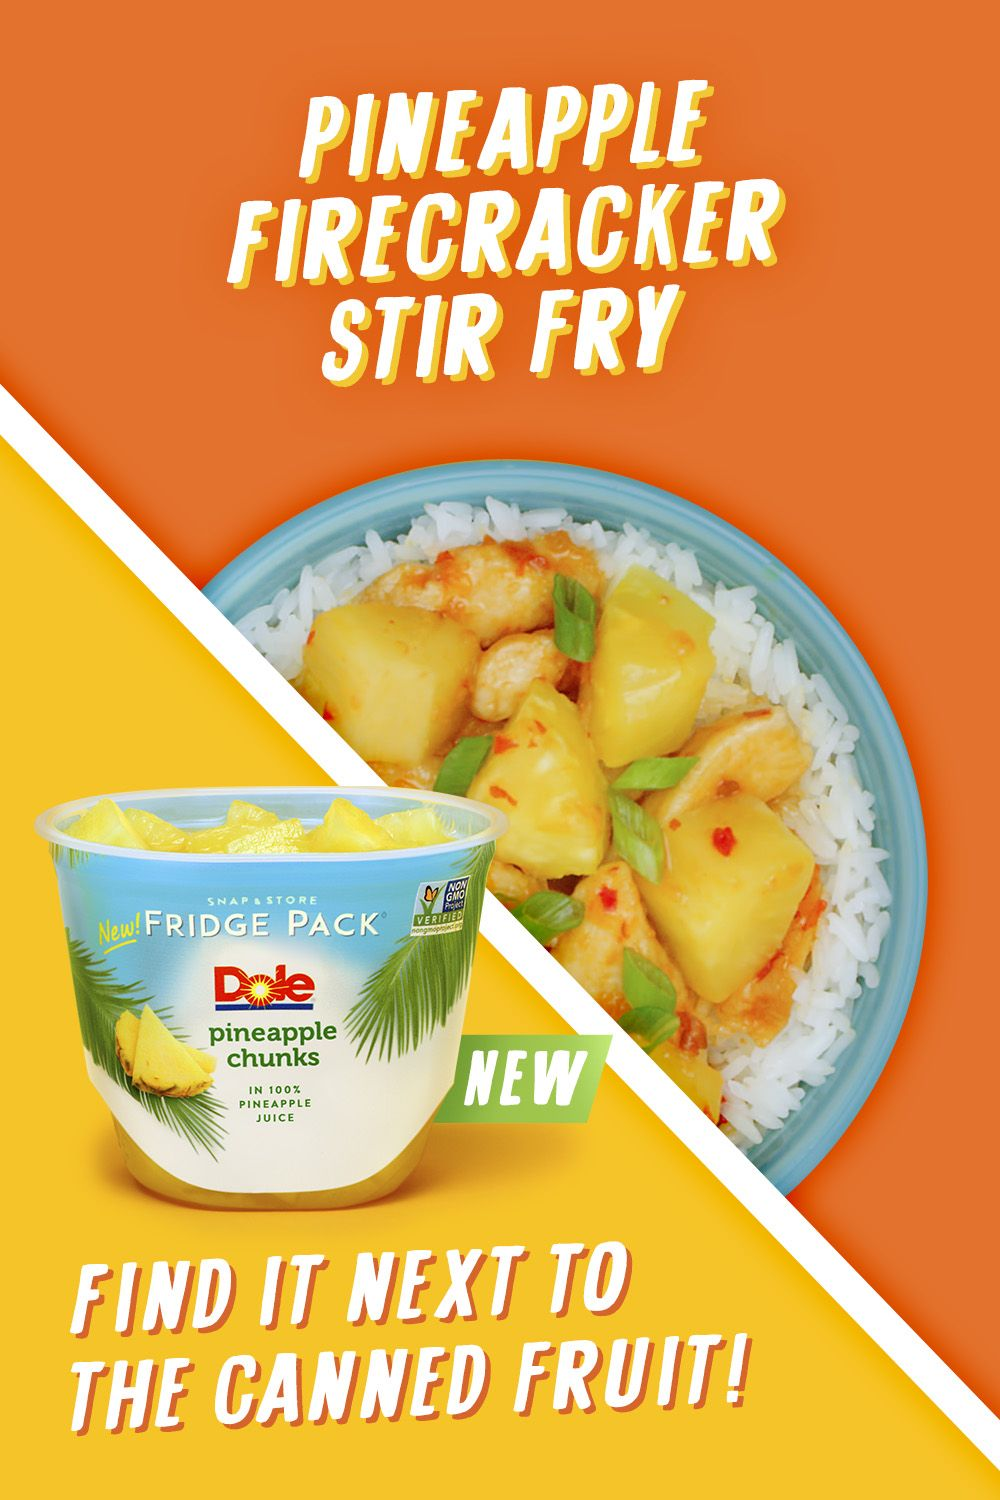 This Pineapple Firecracker Stir Fry is really going to